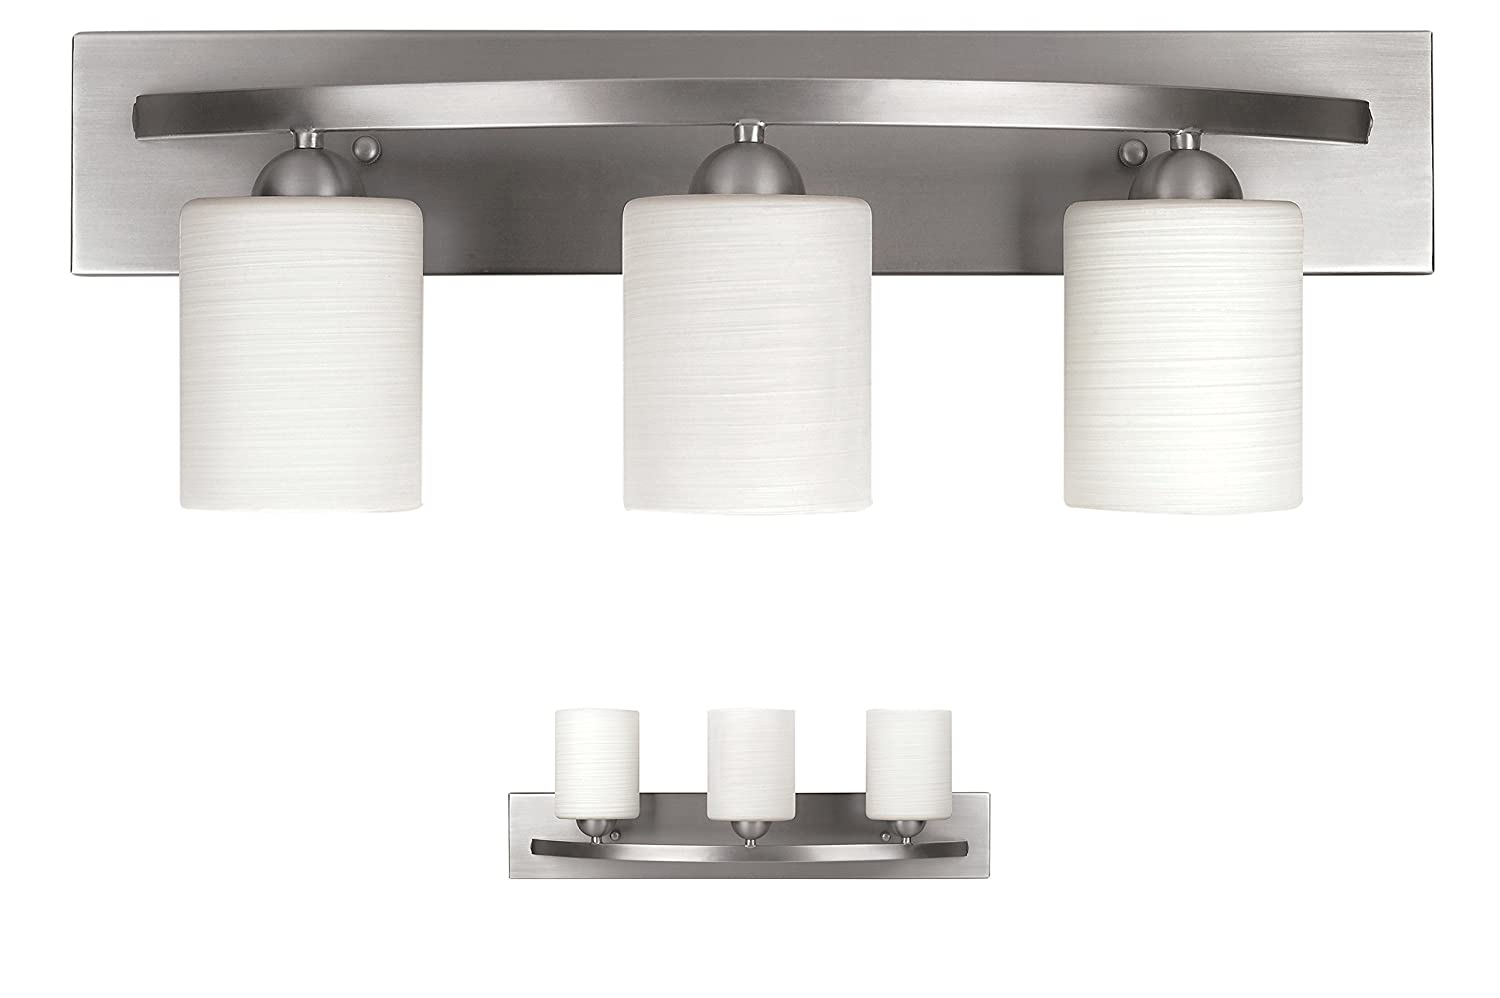 white bathroom lighting. WholesalePlumbing IVL370A03BPT 3 Bulb Vanity Light Fixture Bath Interior Lighting, Brushed Nickel - Amazon.com White Bathroom Lighting